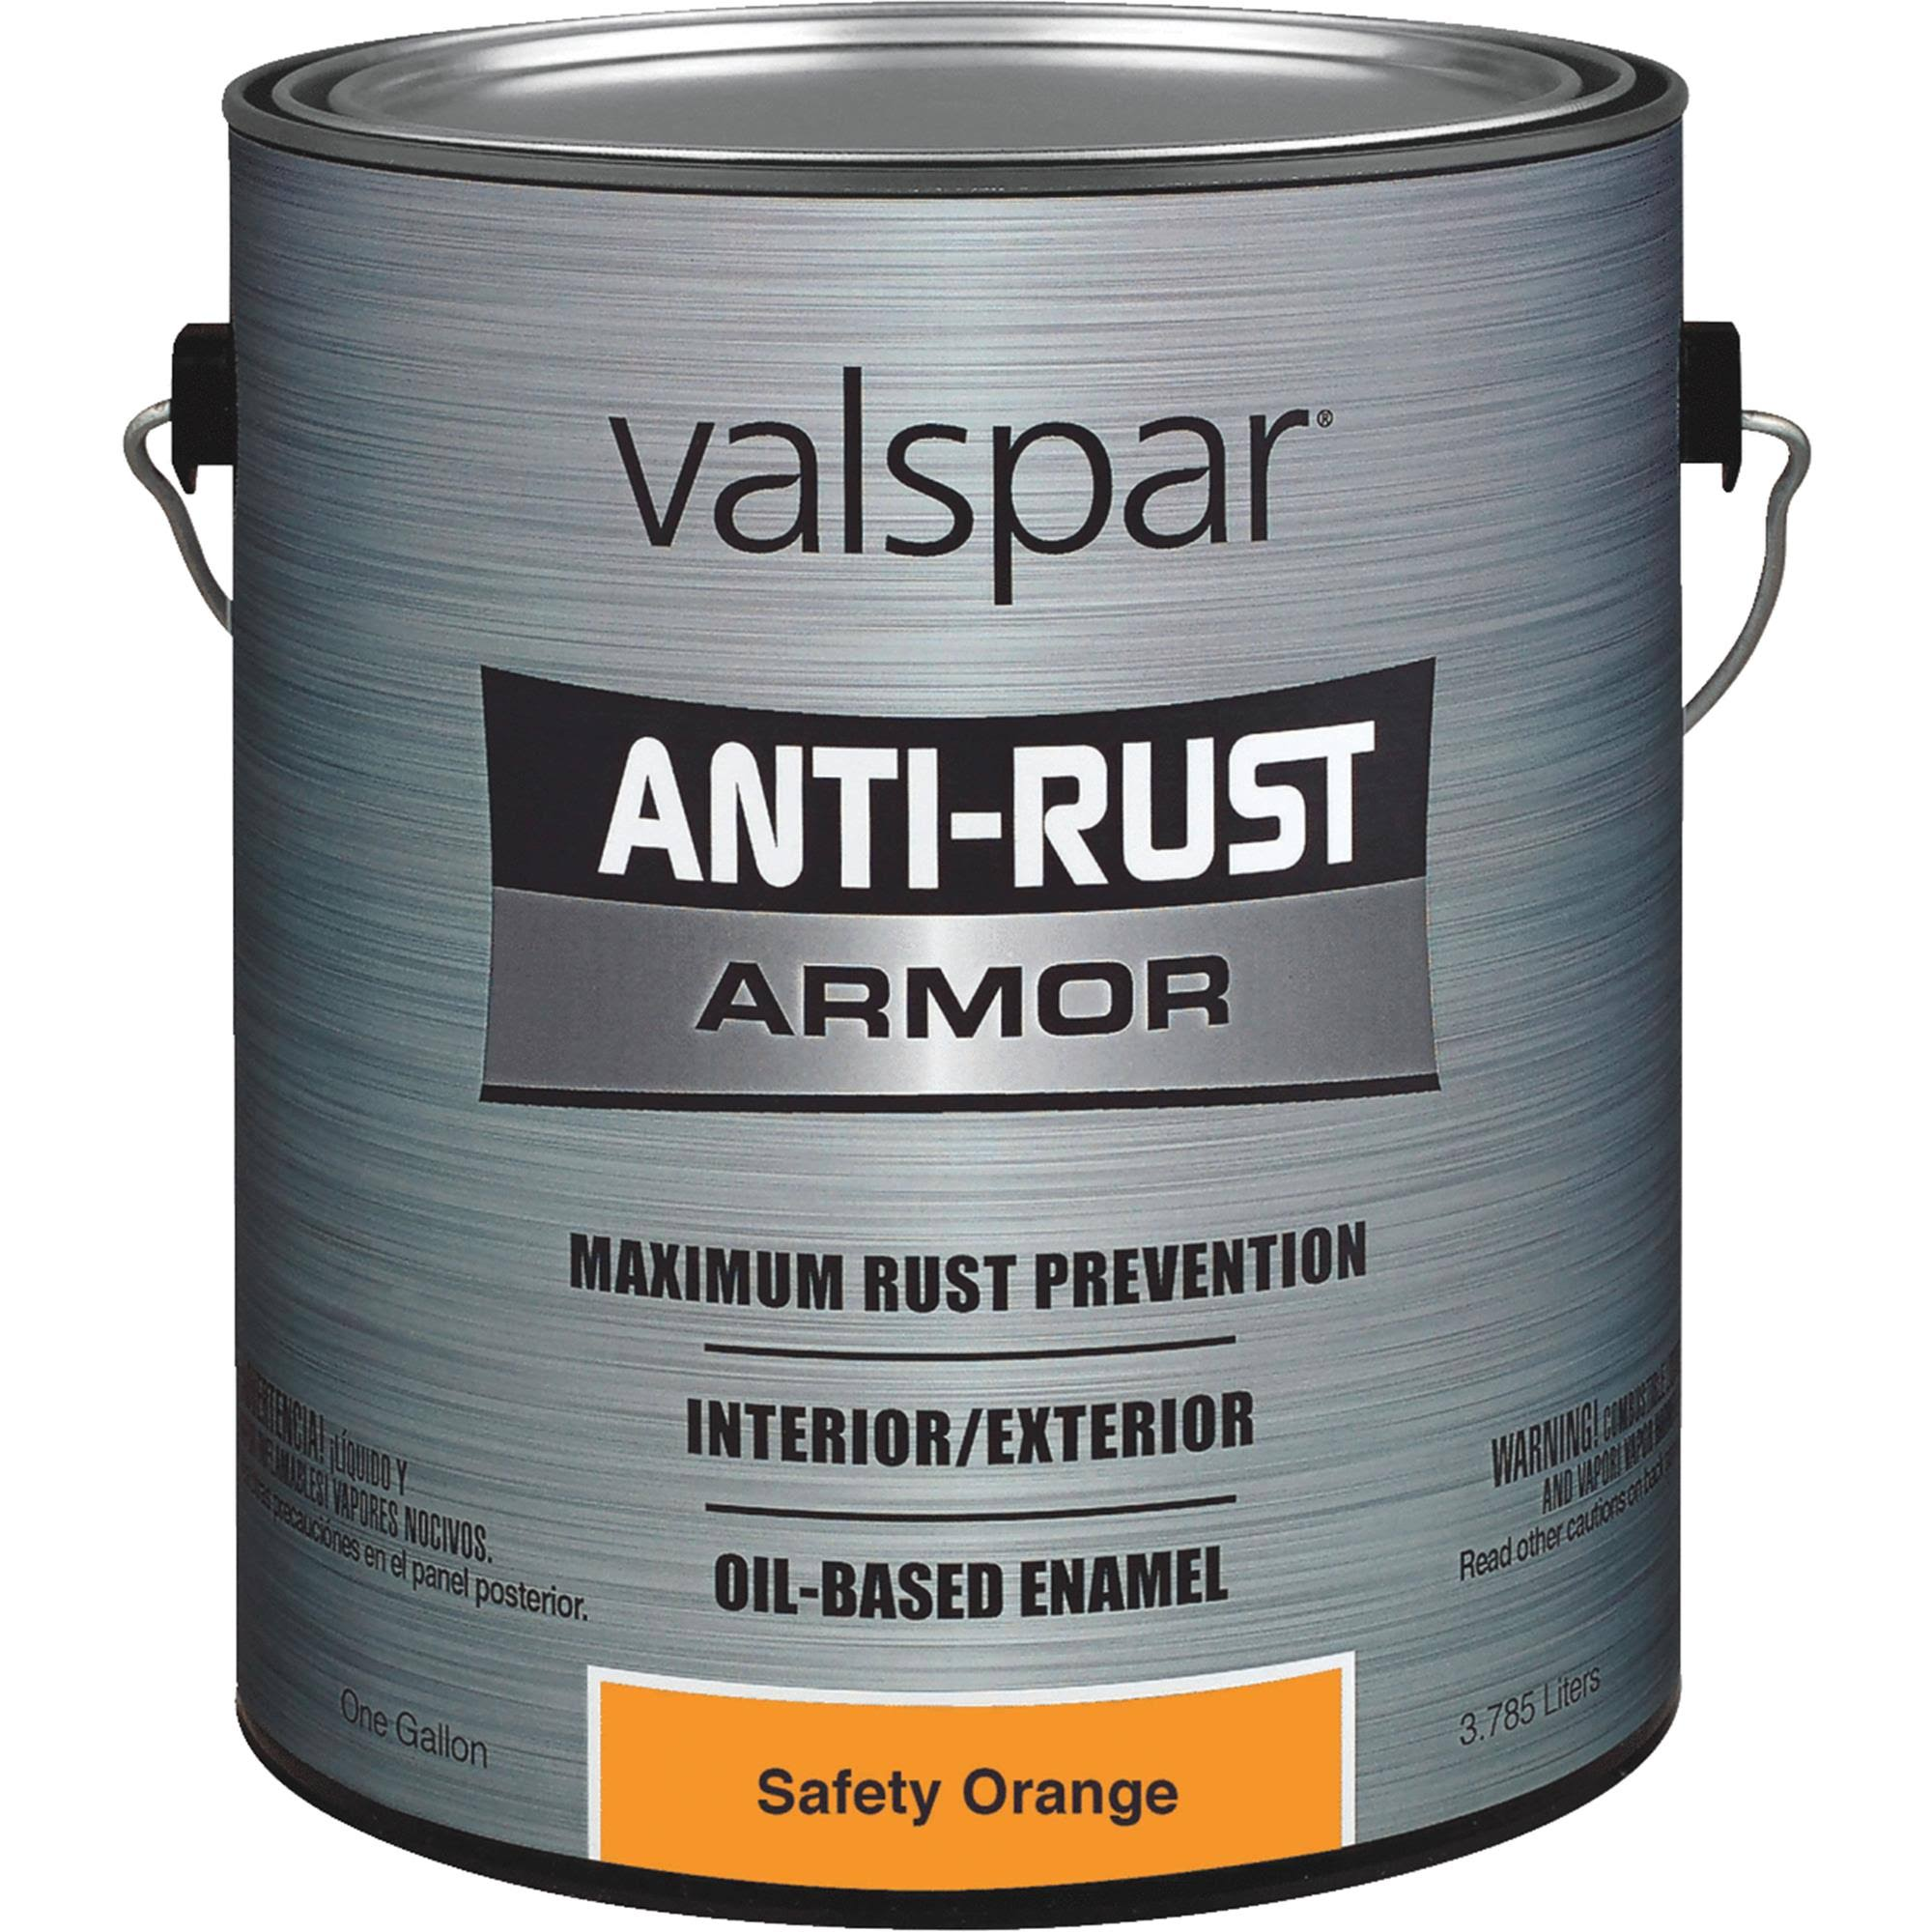 Valspar Anti-Rust Armor Oil-Based Enamel - Orange